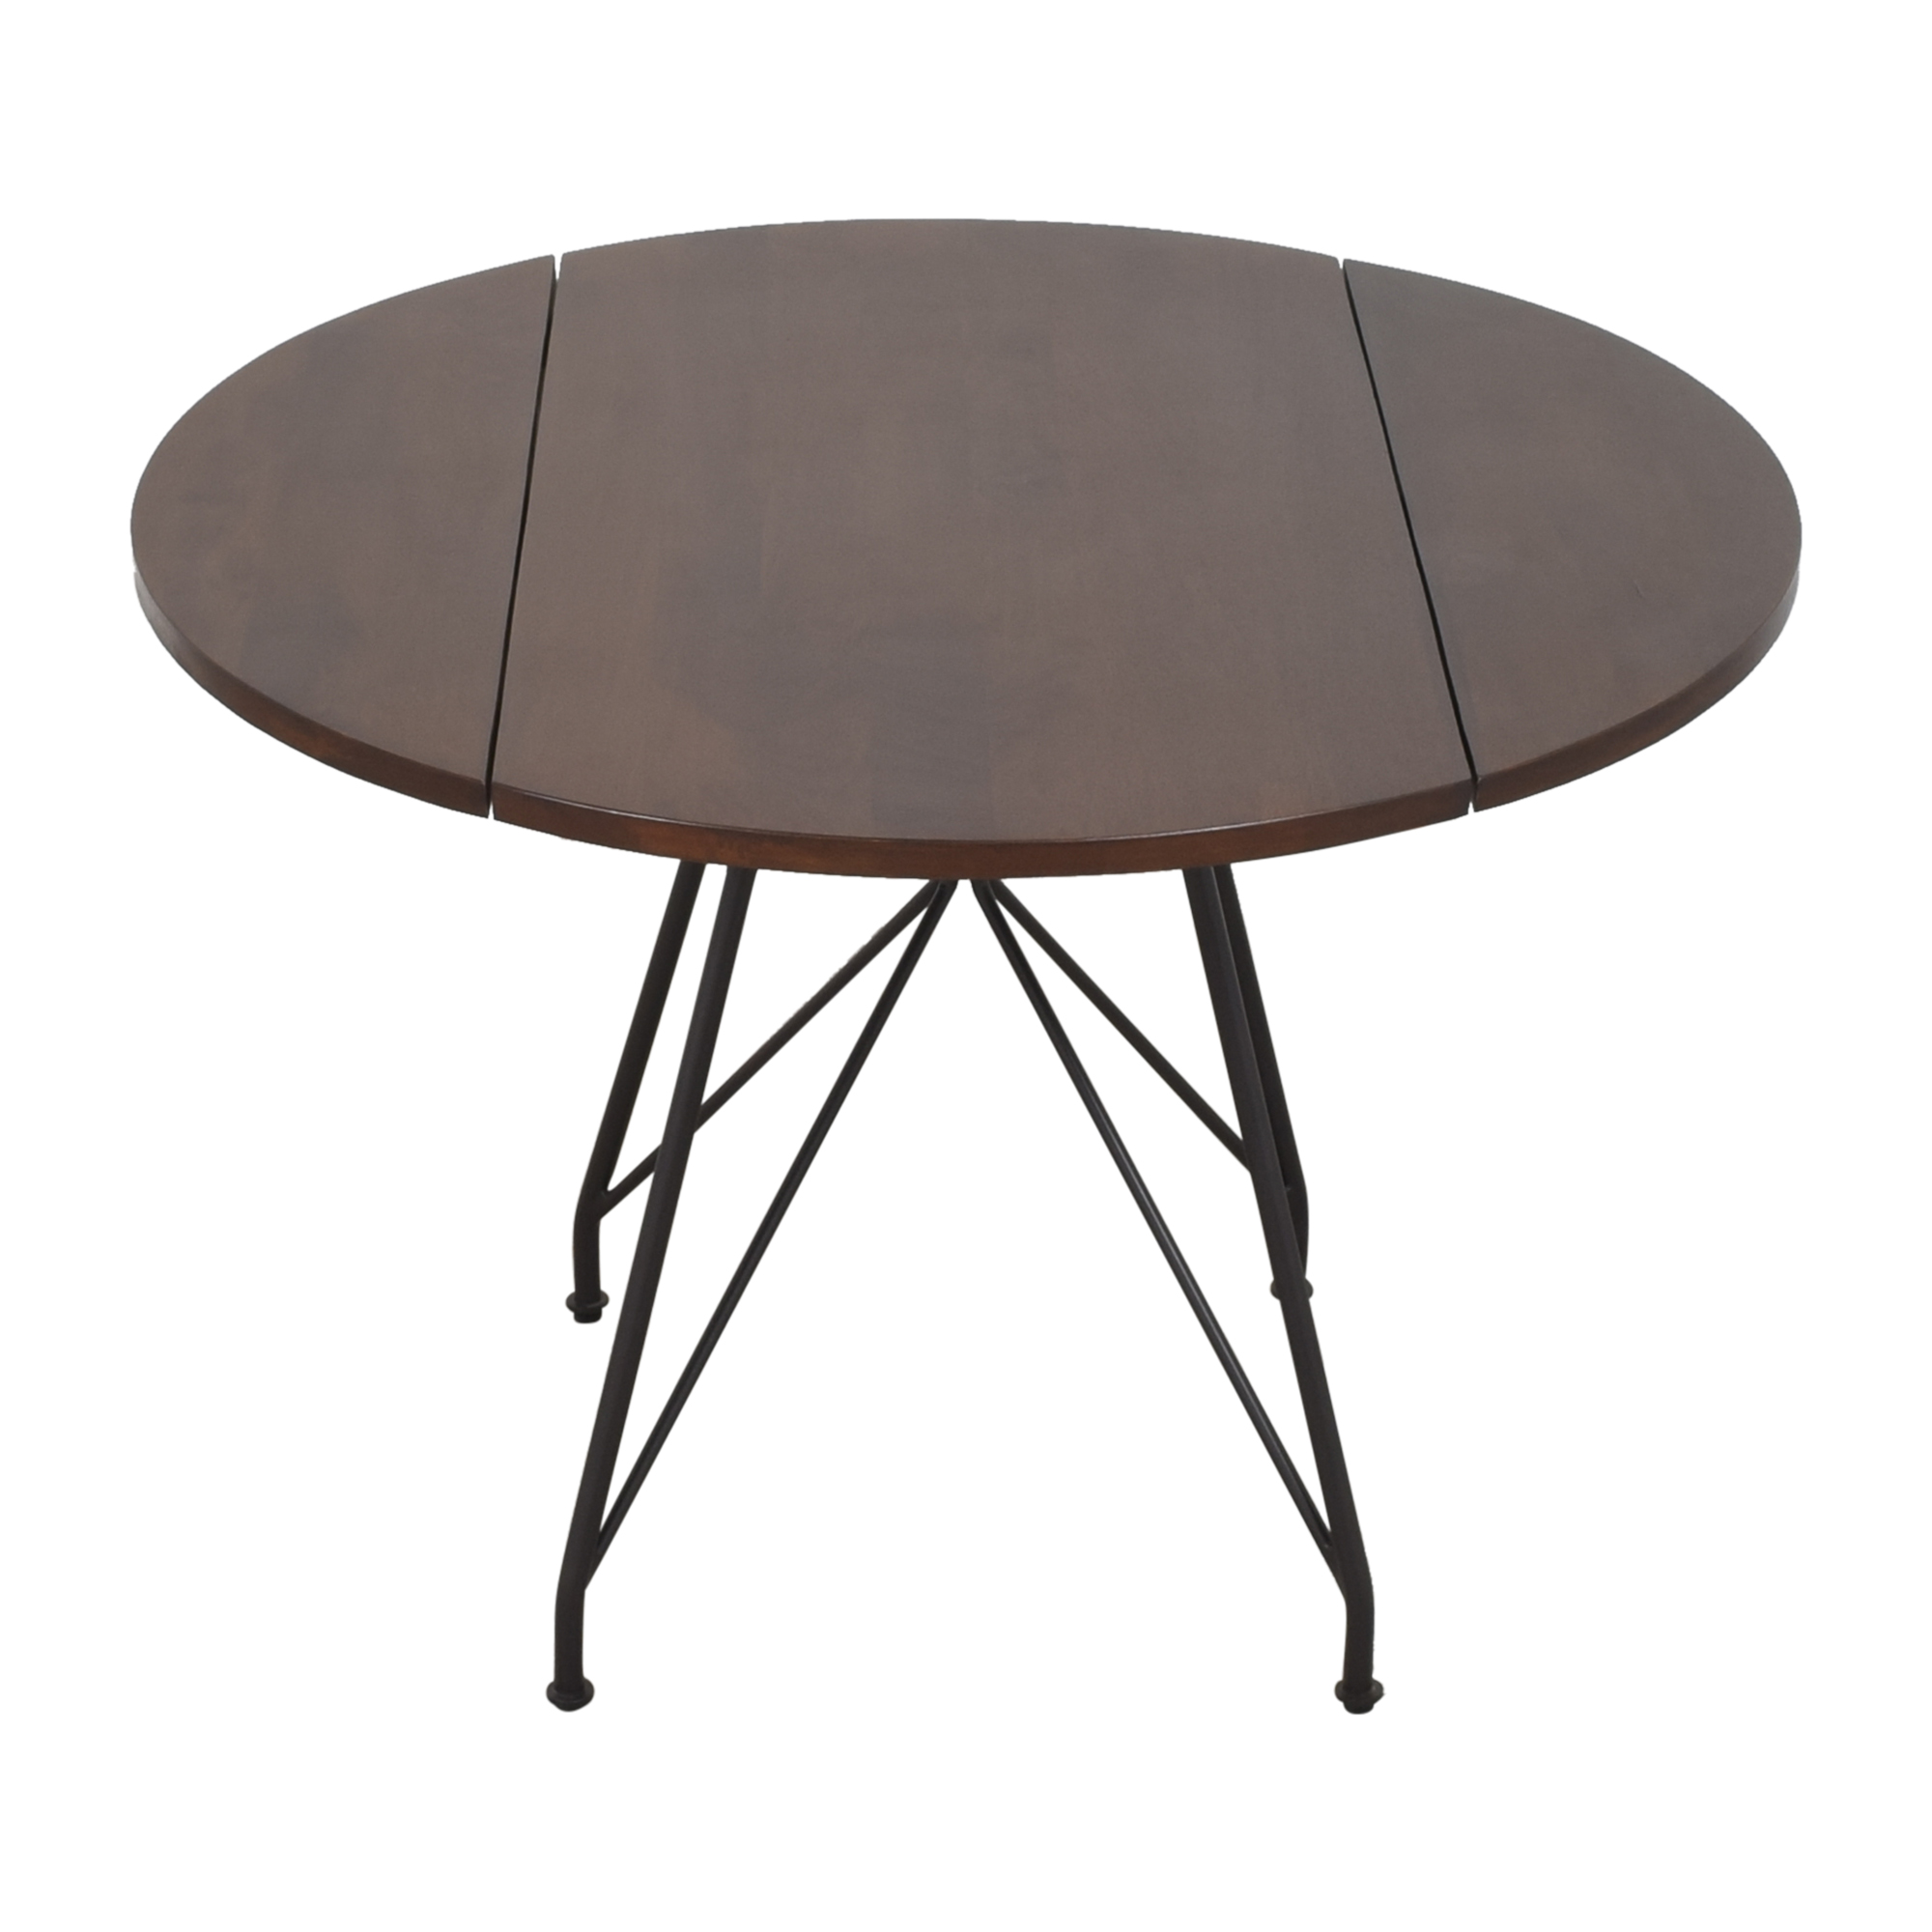 West Elm Jules Drop Leaf Expandable Dining Table / Dinner Tables